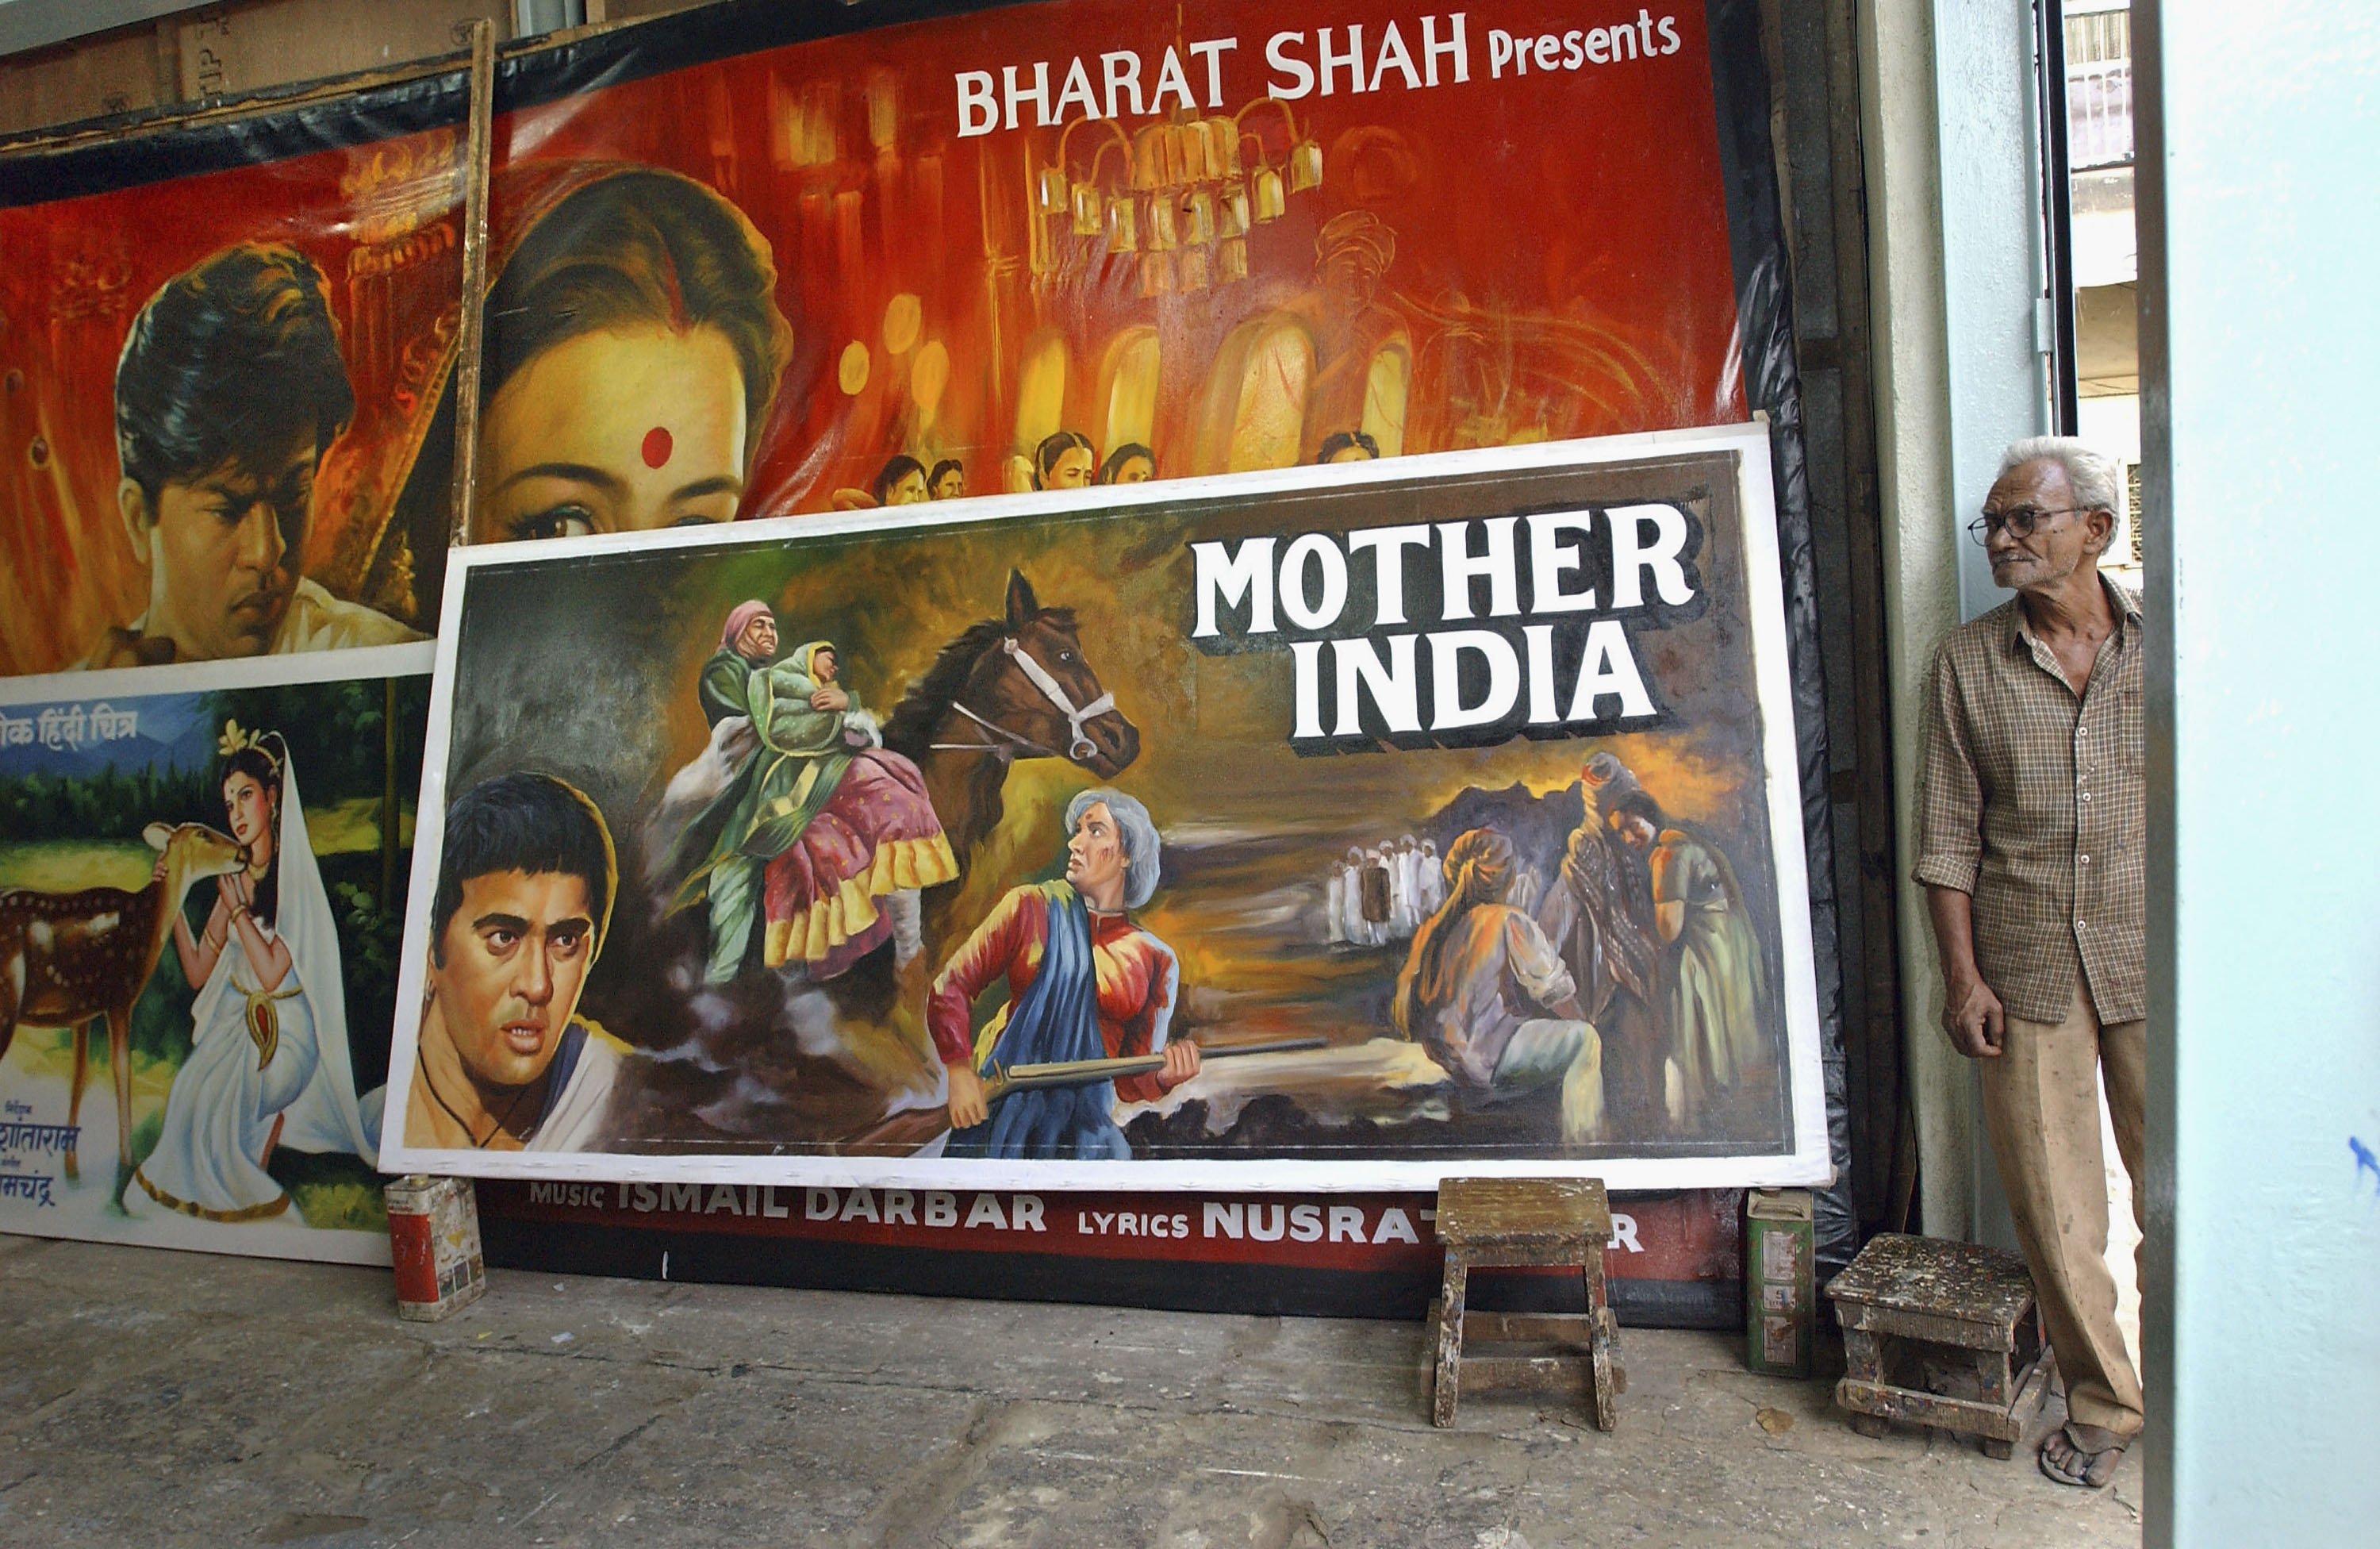 A collection of Bollywood posters in Mumbai